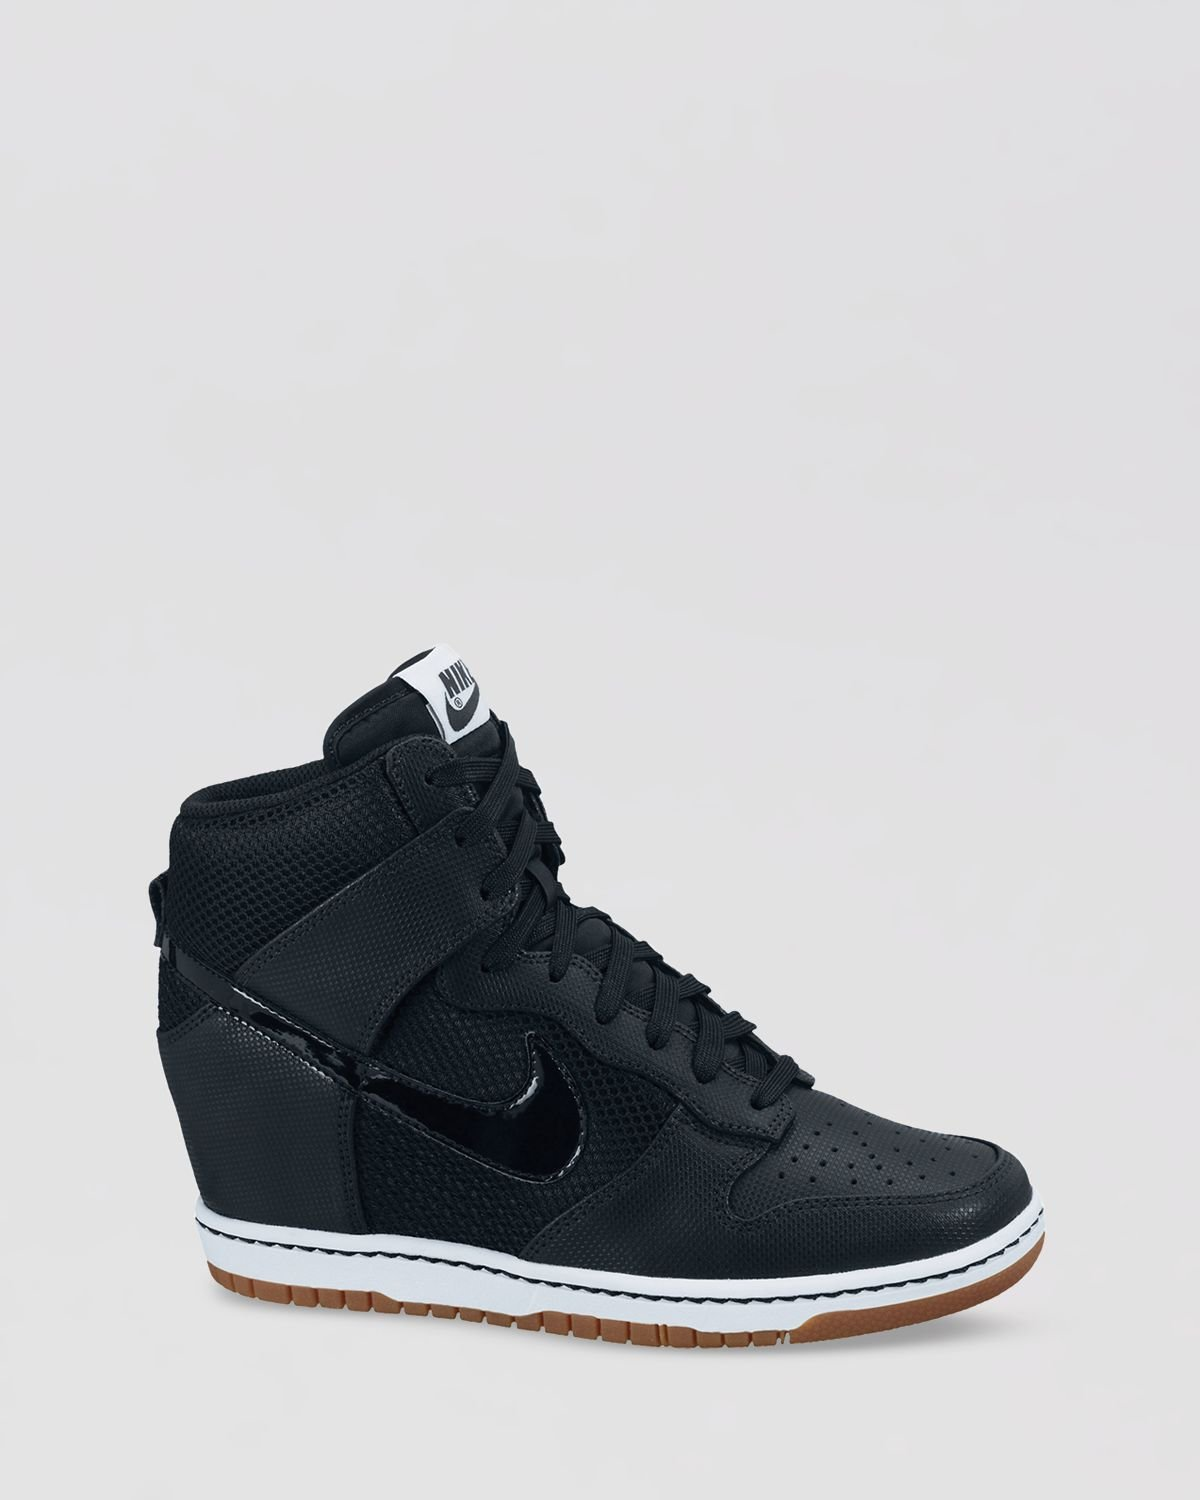 nike high top lace up sneakers womens dunk sky hi in black lyst. Black Bedroom Furniture Sets. Home Design Ideas